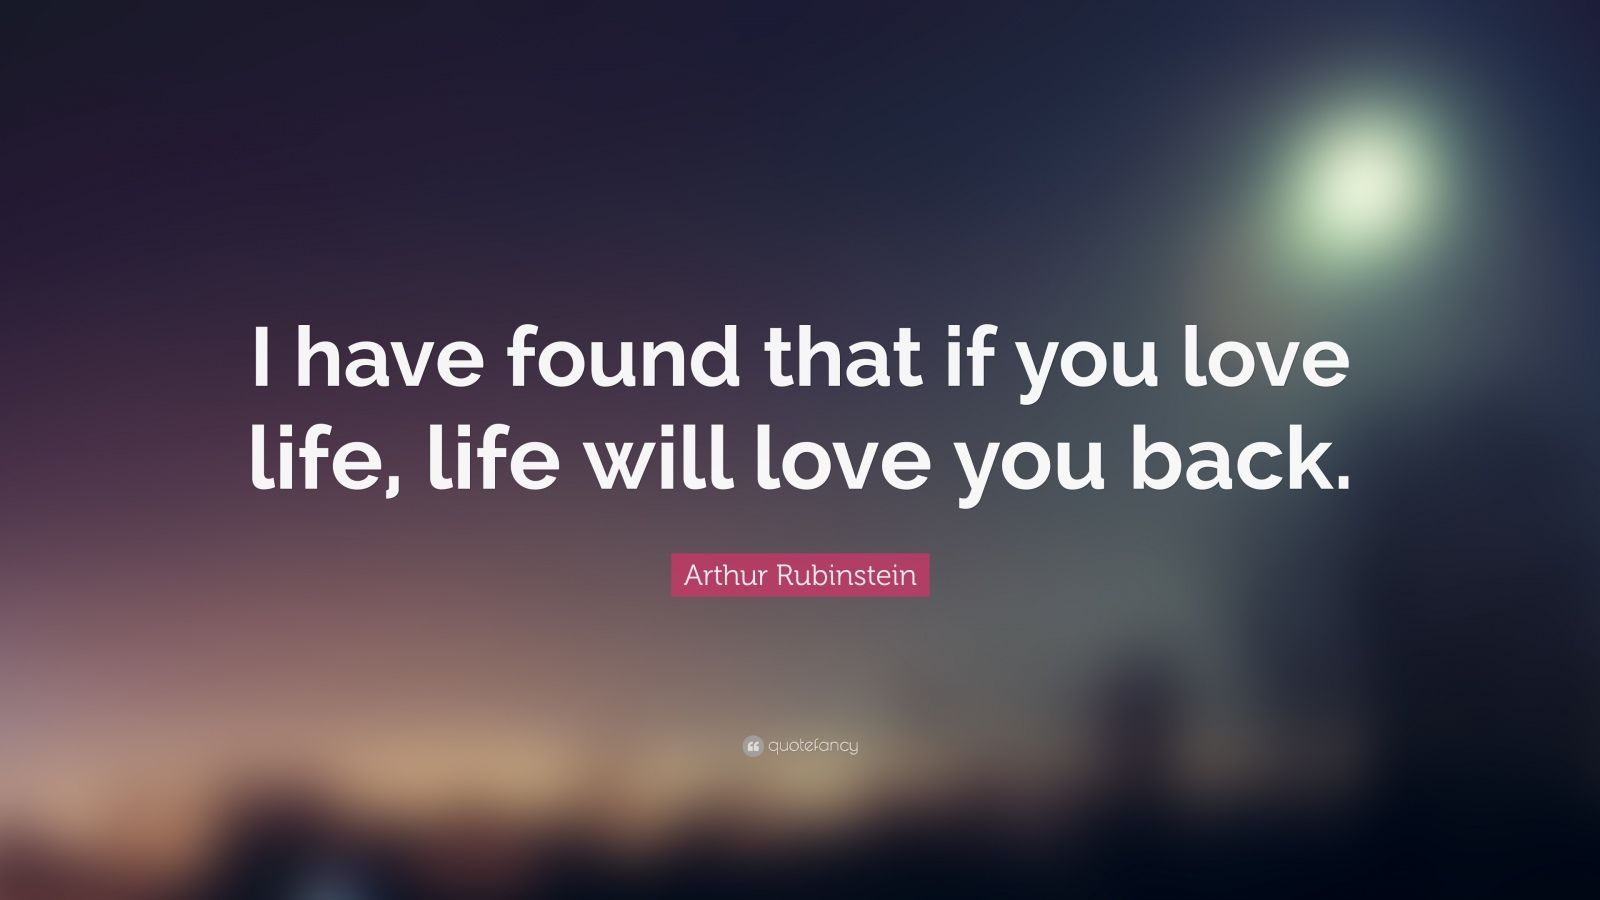 Inspirational Quotes On Love And Life Inspirational Quotes About Life And Love  Bitami